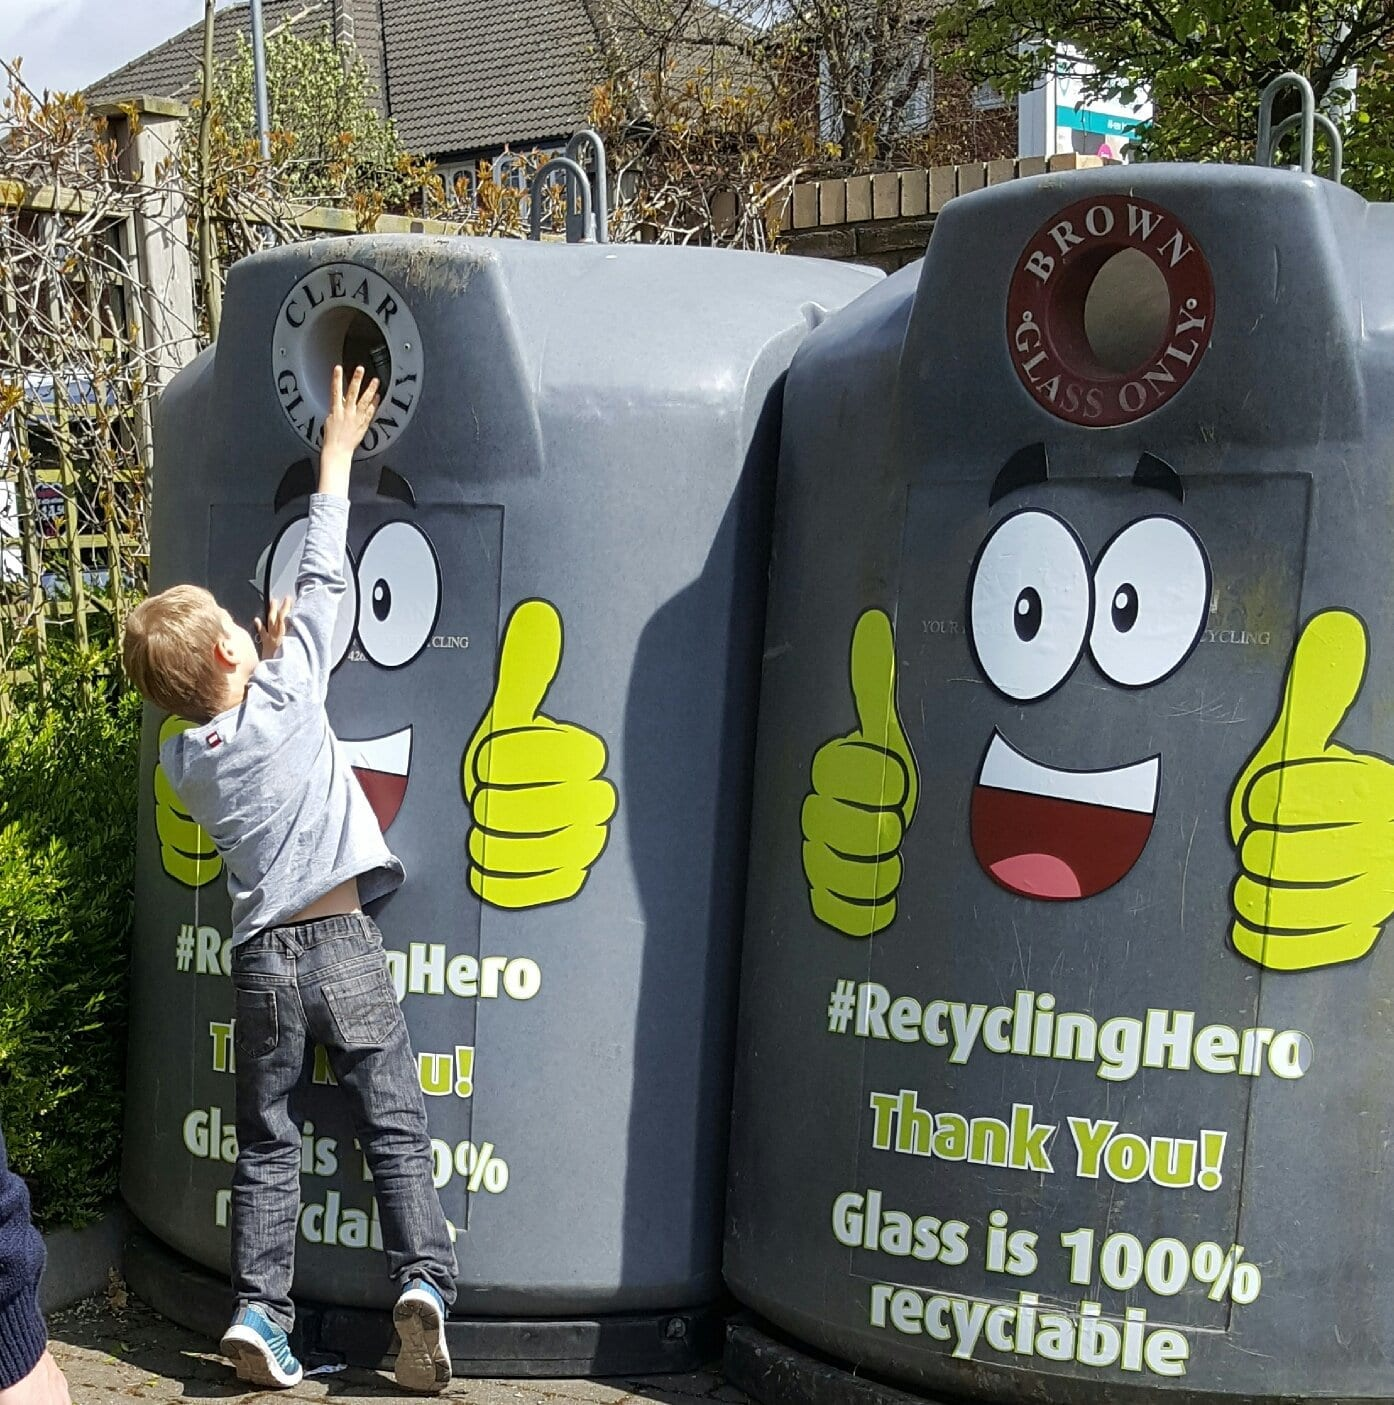 Recycling Hero Leeds Campaign Success